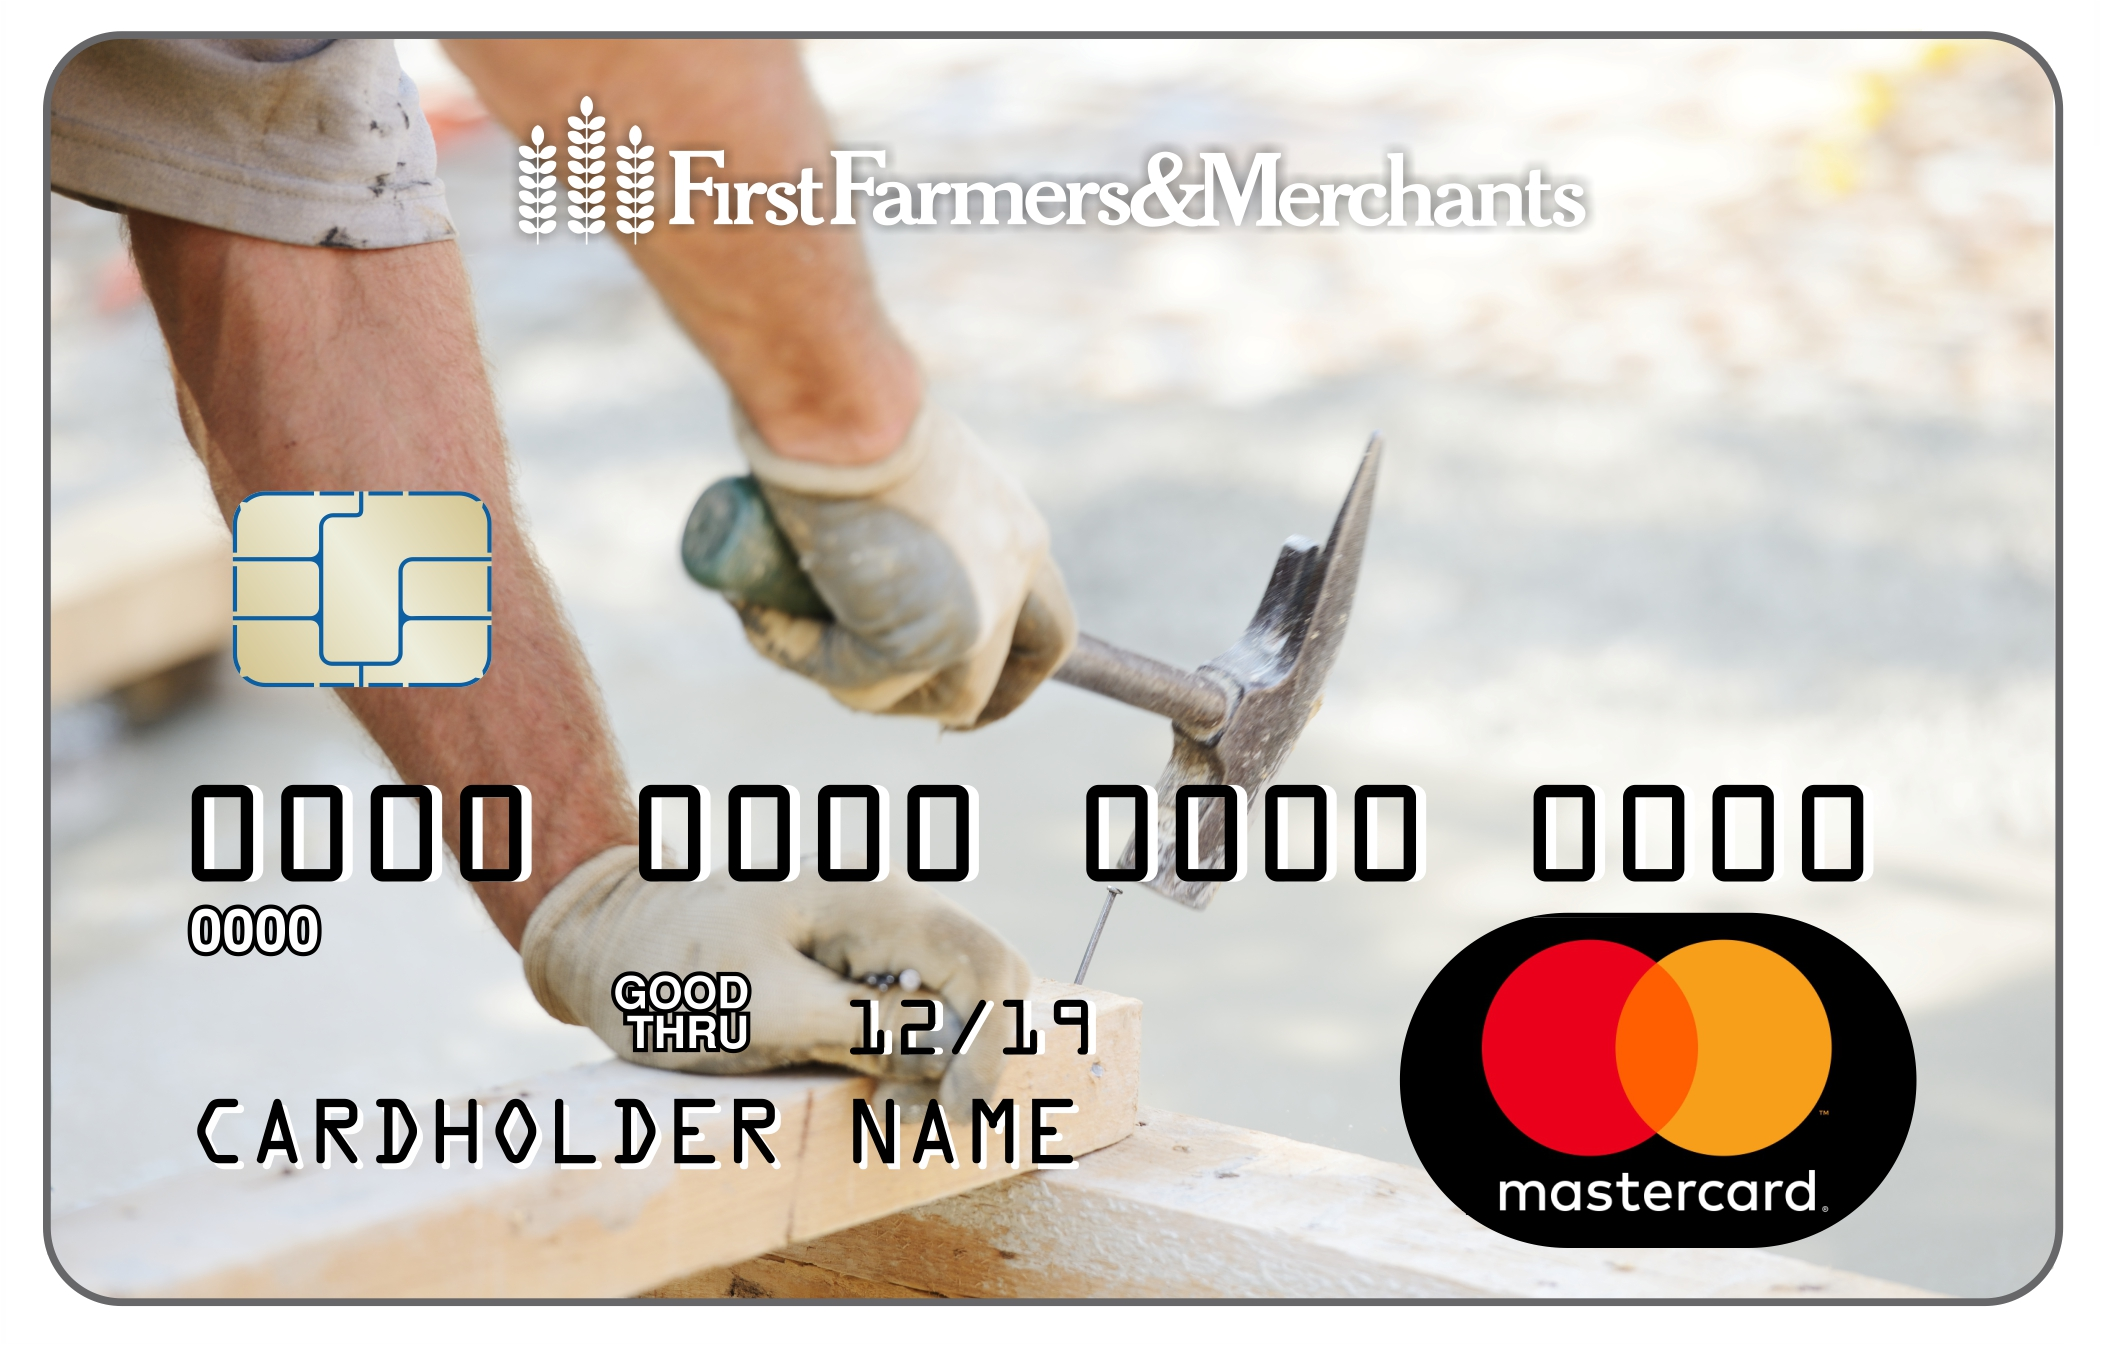 debit card with a photo of a man holding a hammer working on building a deck